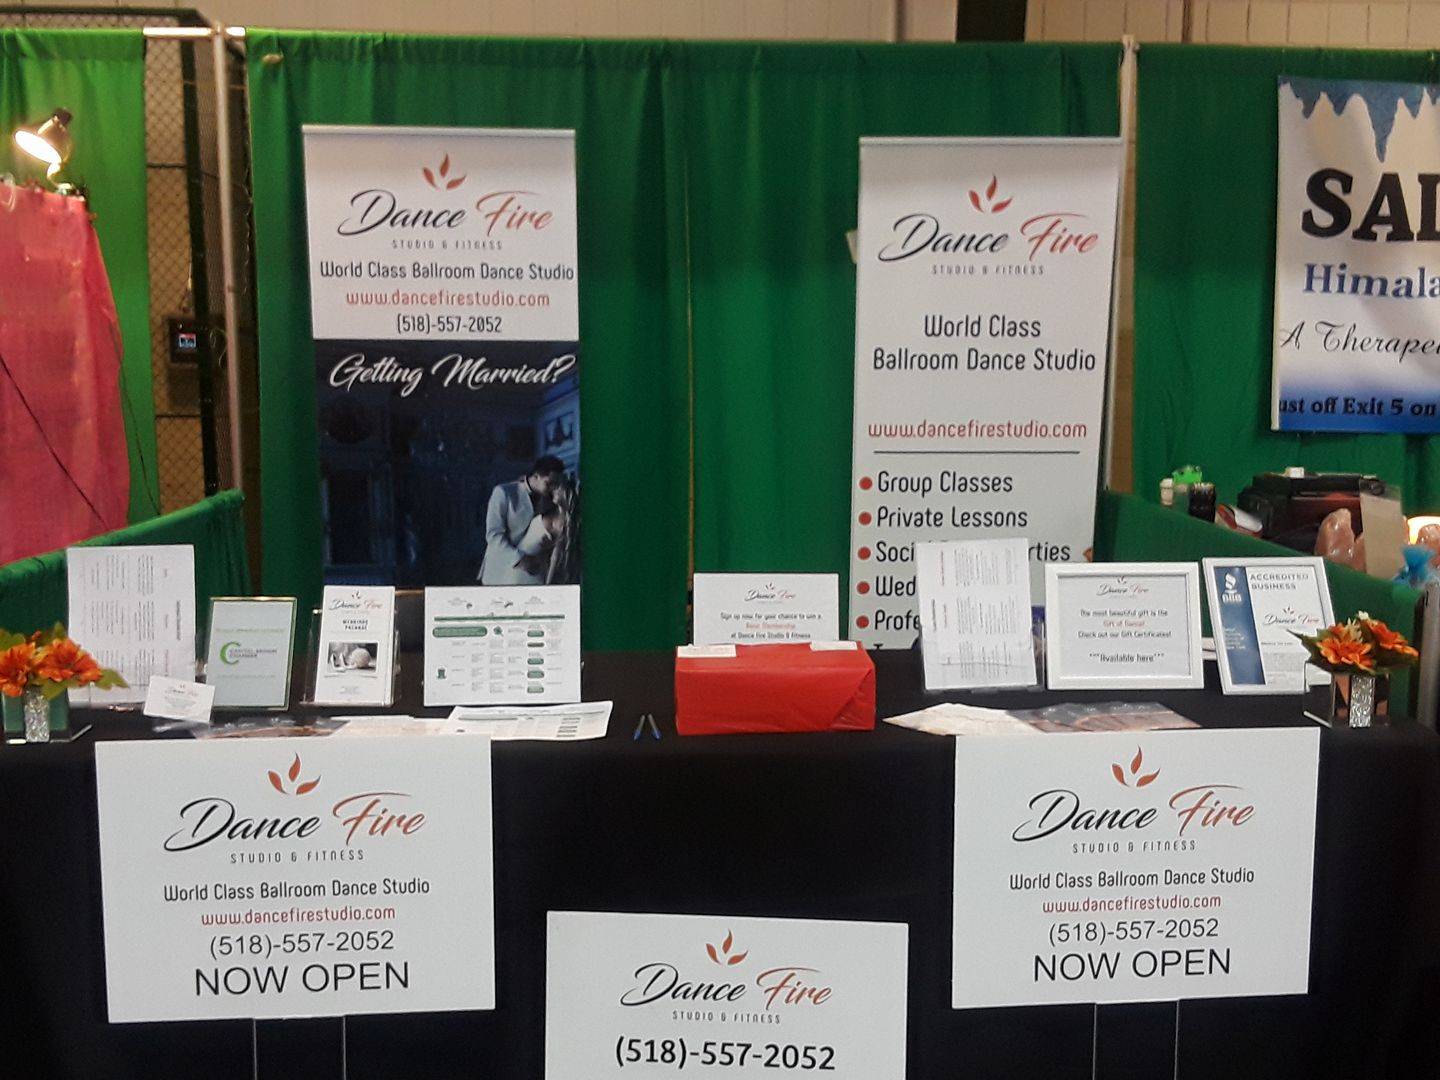 Stay tuned for our announcement of the winner of the Basic Membership! Thank you, Women's Expo, for having us!